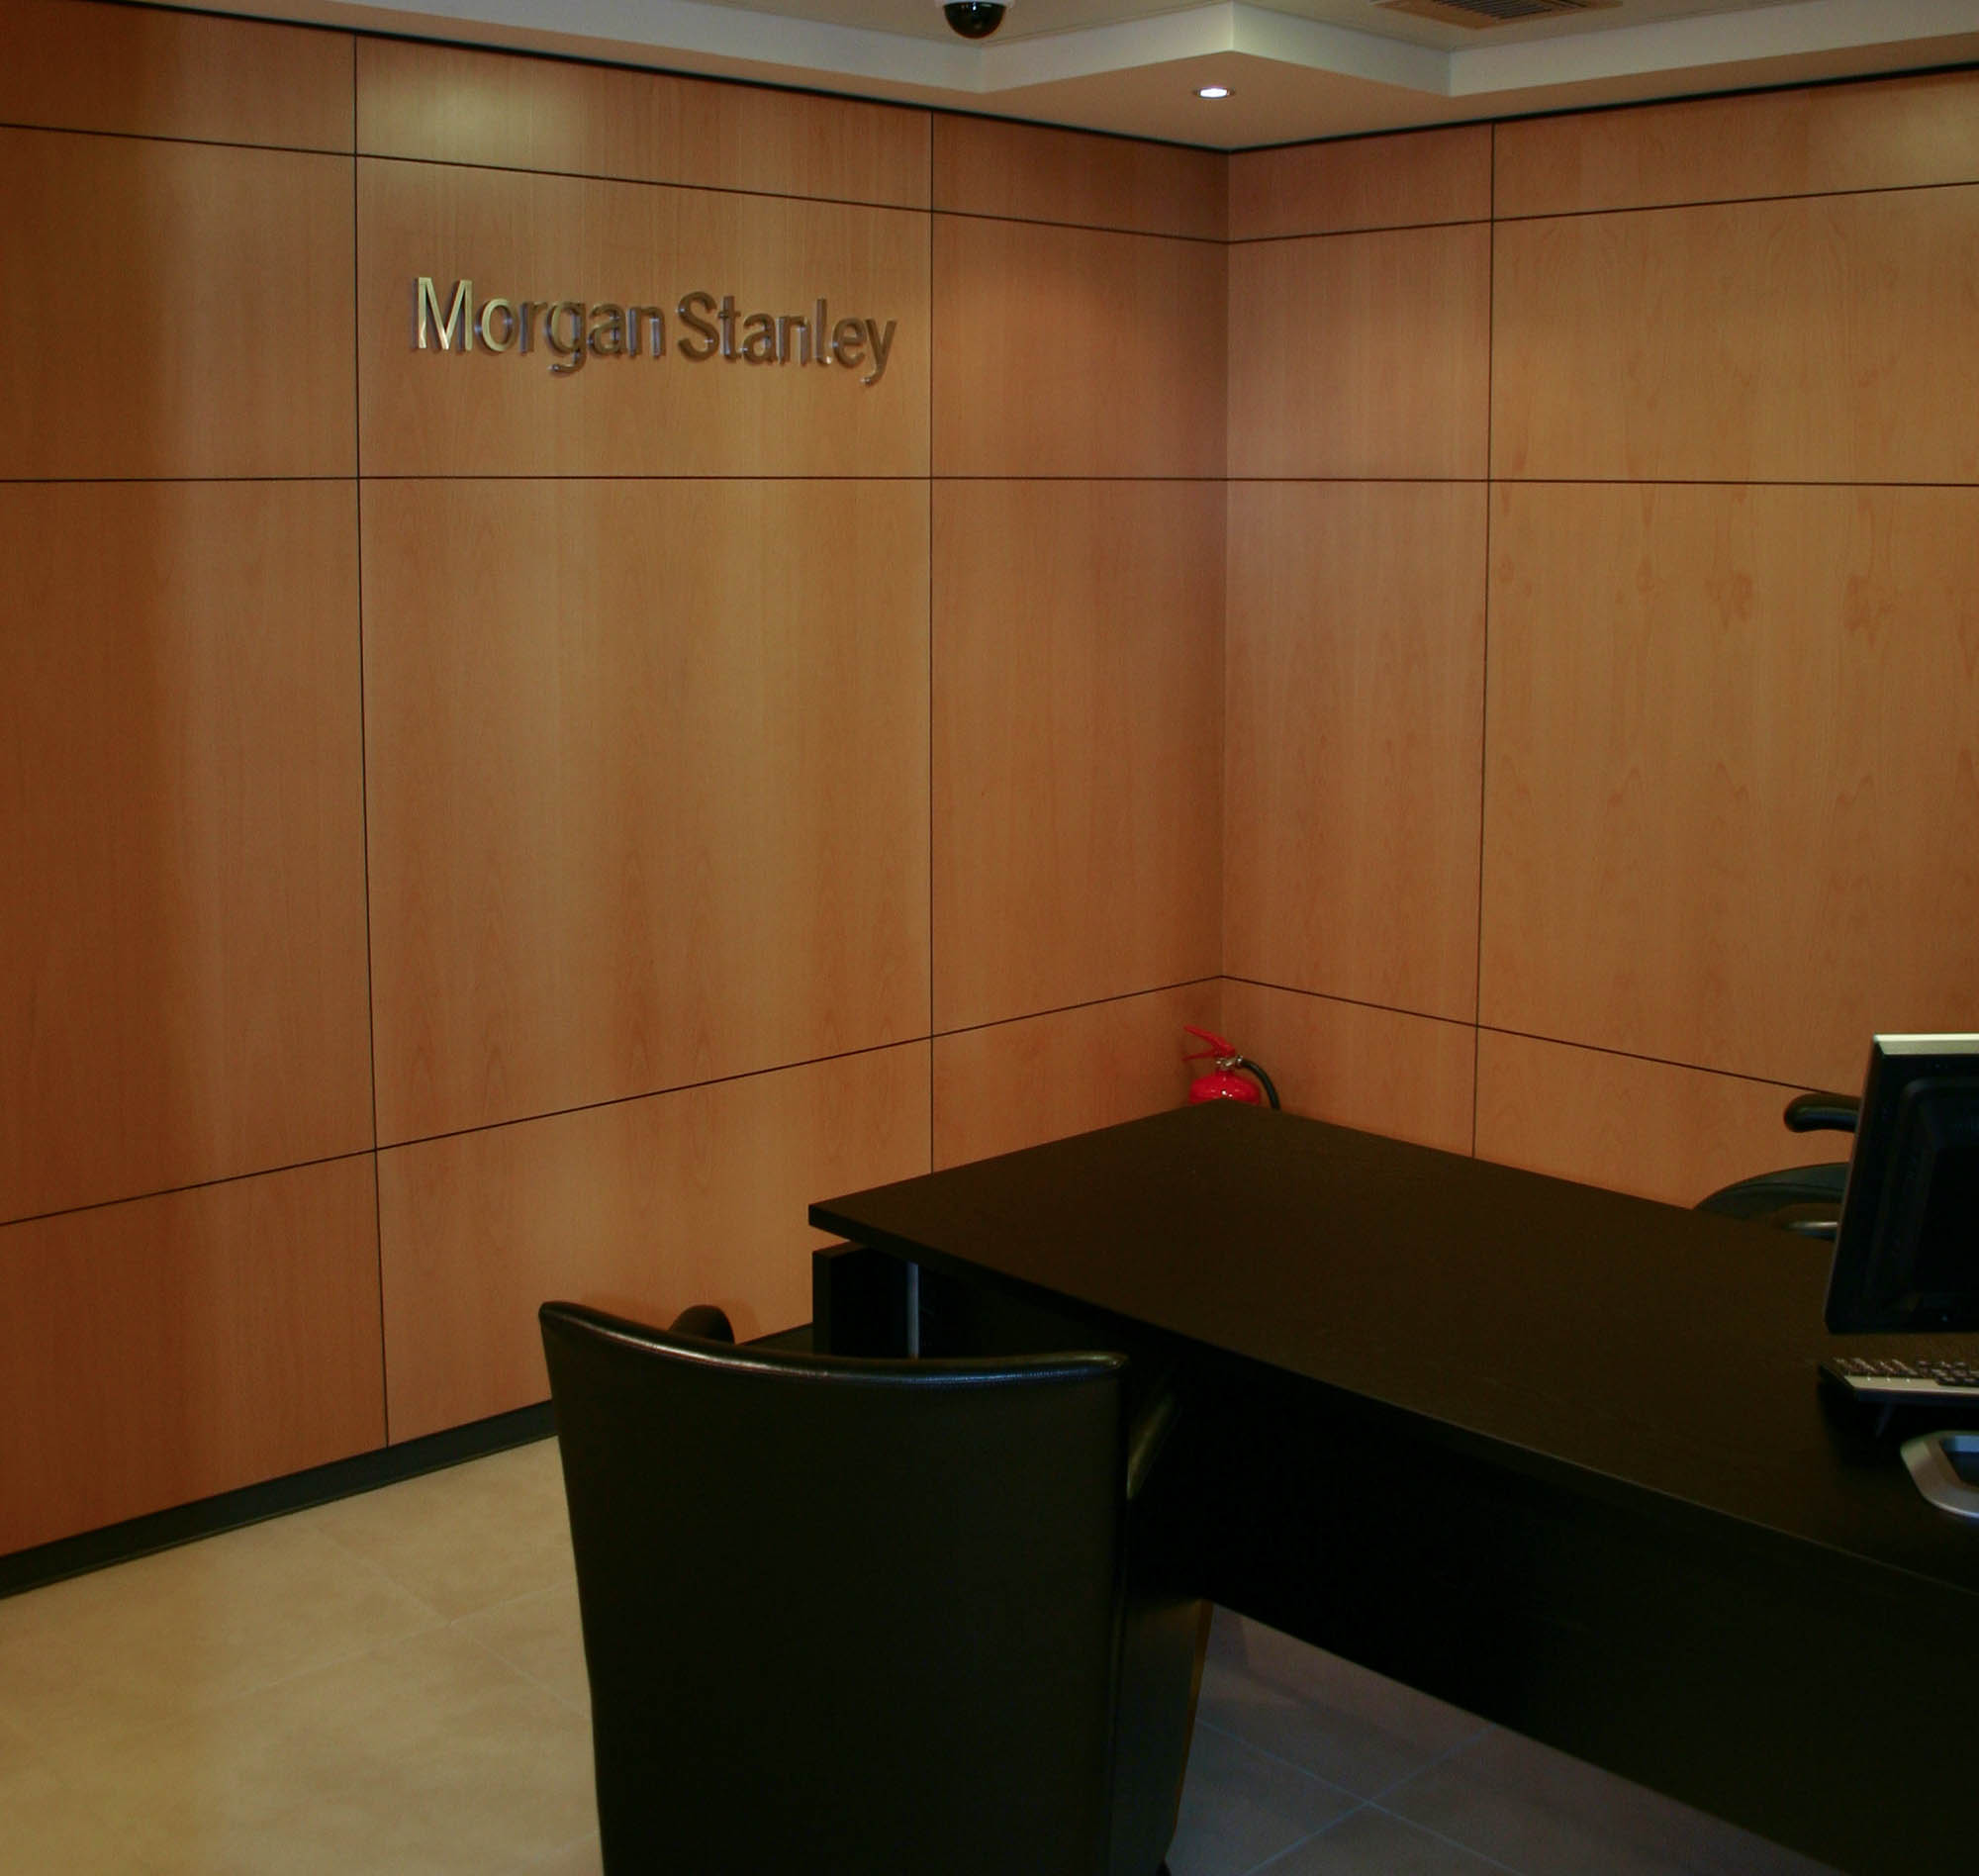 Morgan Stanley - BALLIAN TECHNIKI S A